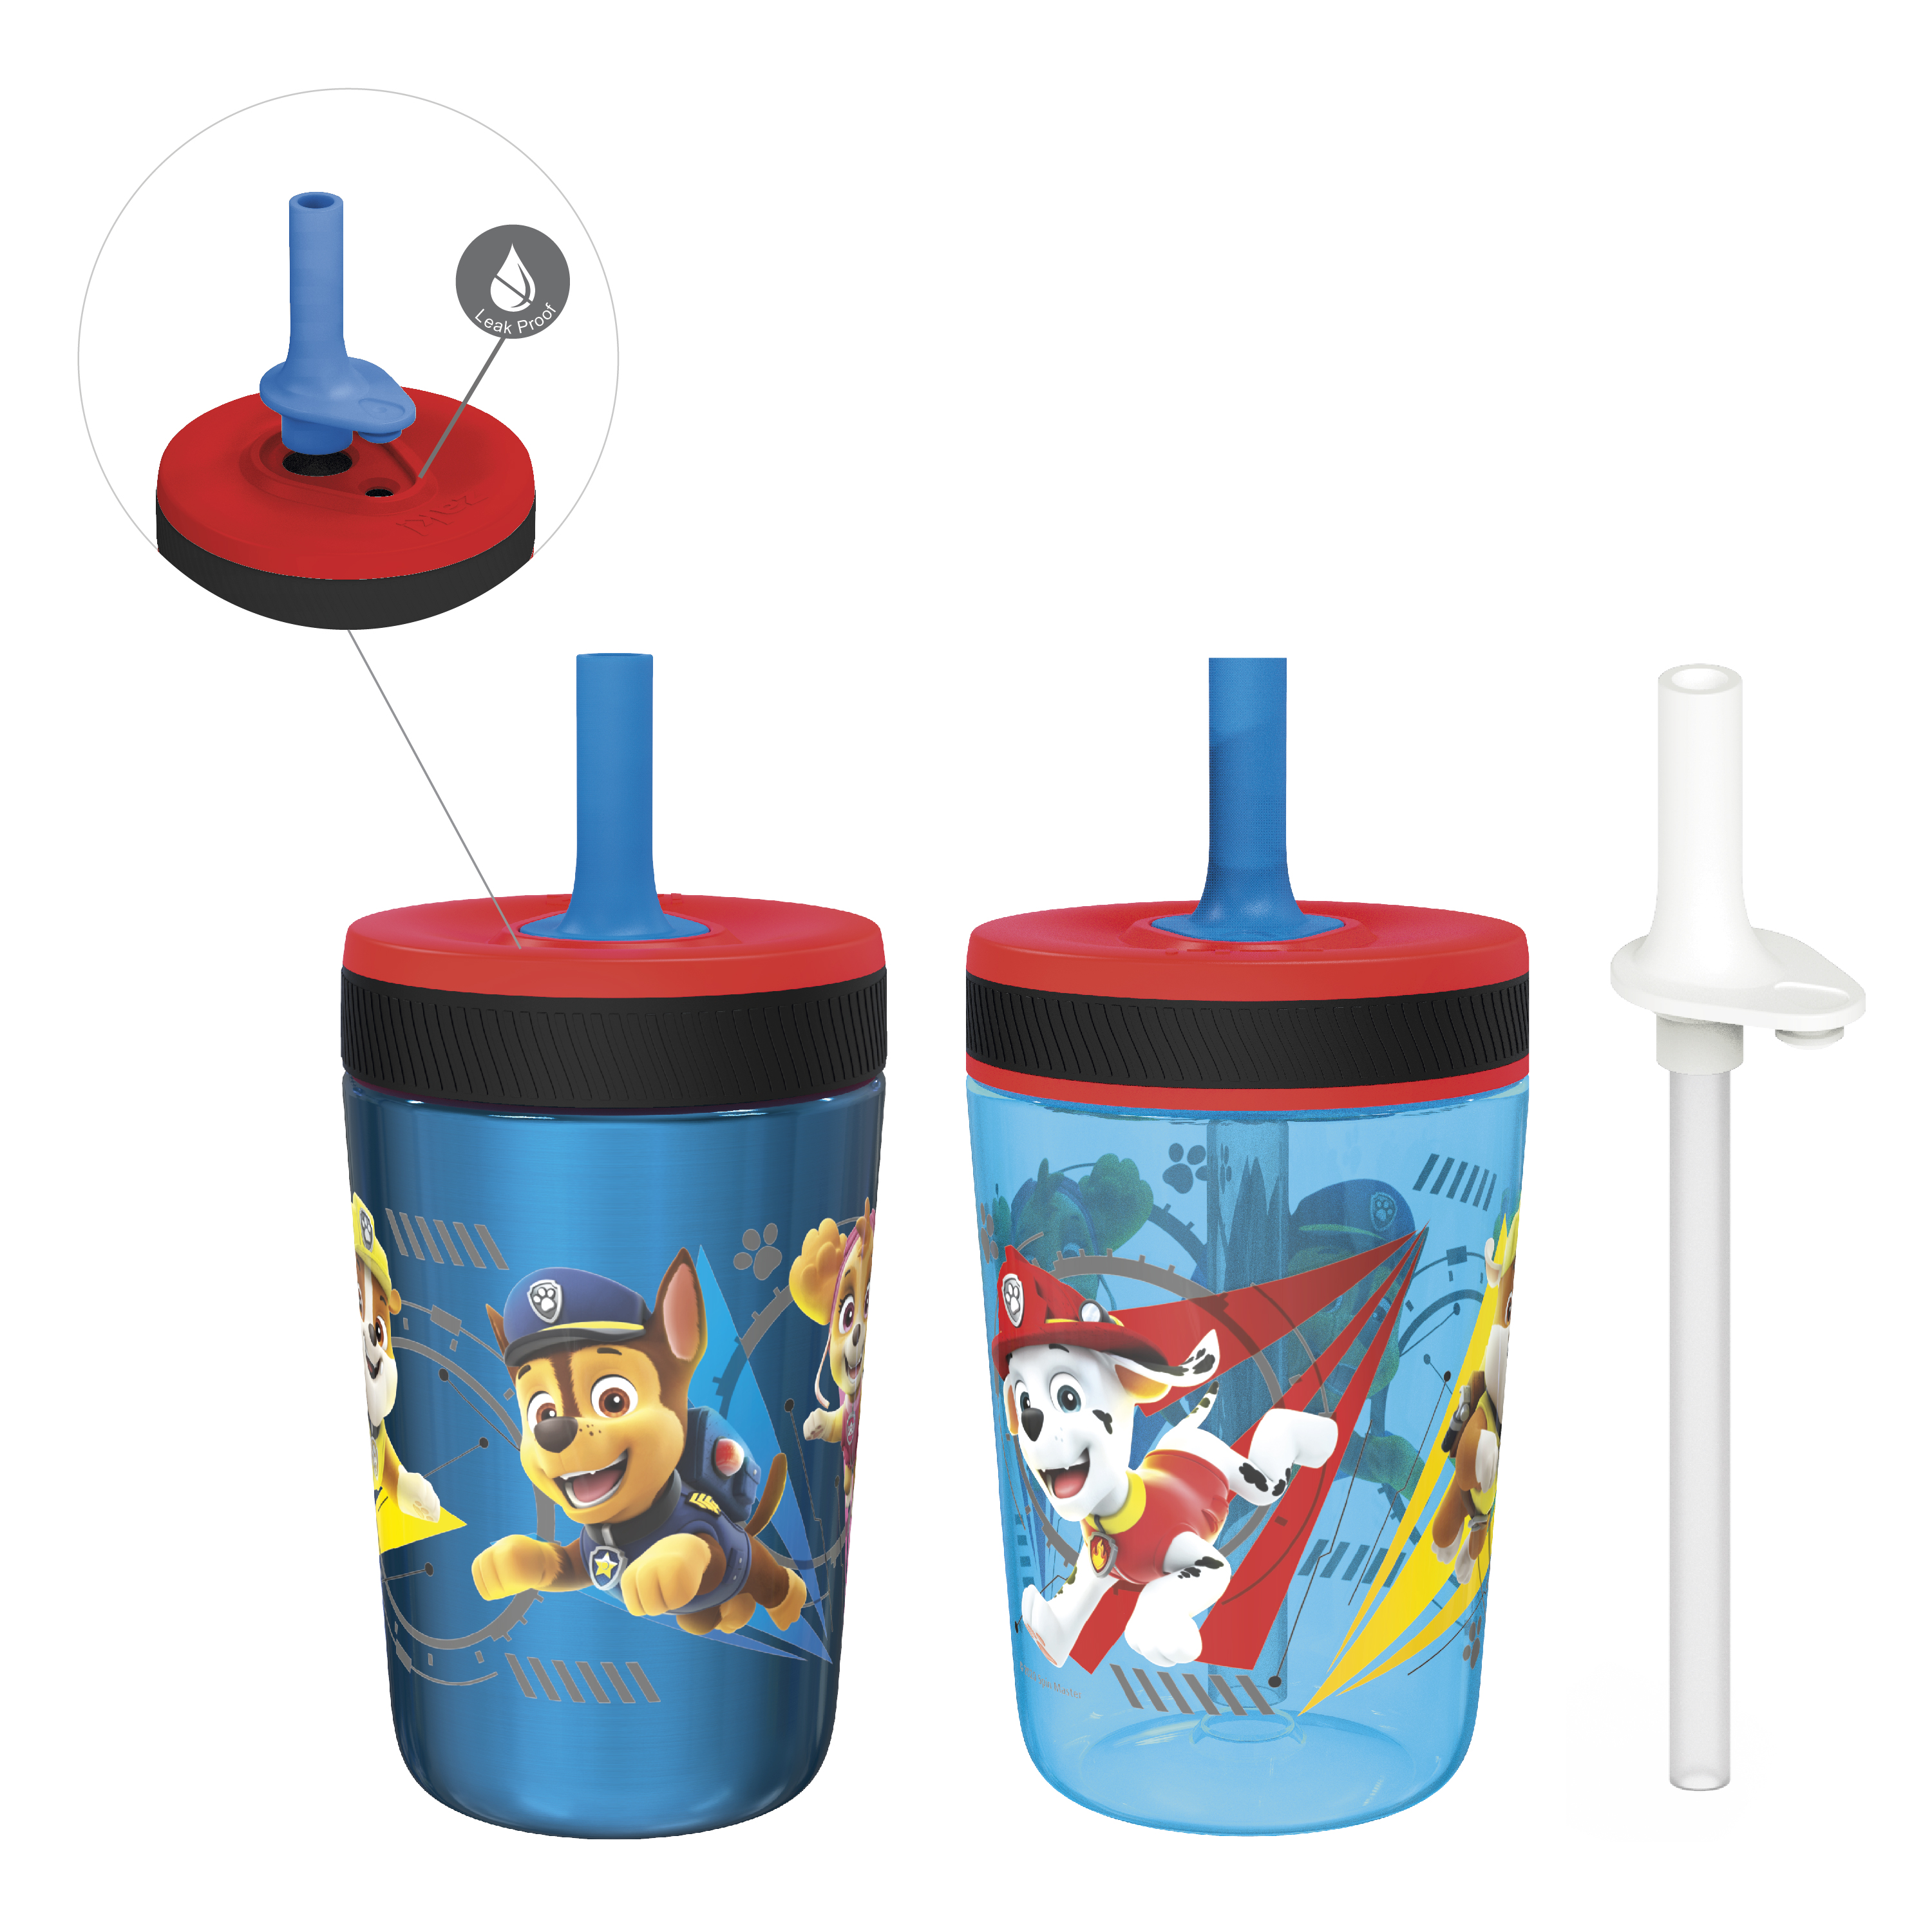 Paw Patrol 15  ounce Plastic Tumbler, Chase, Skye, Marshall and Friends, 3-piece set slideshow image 1